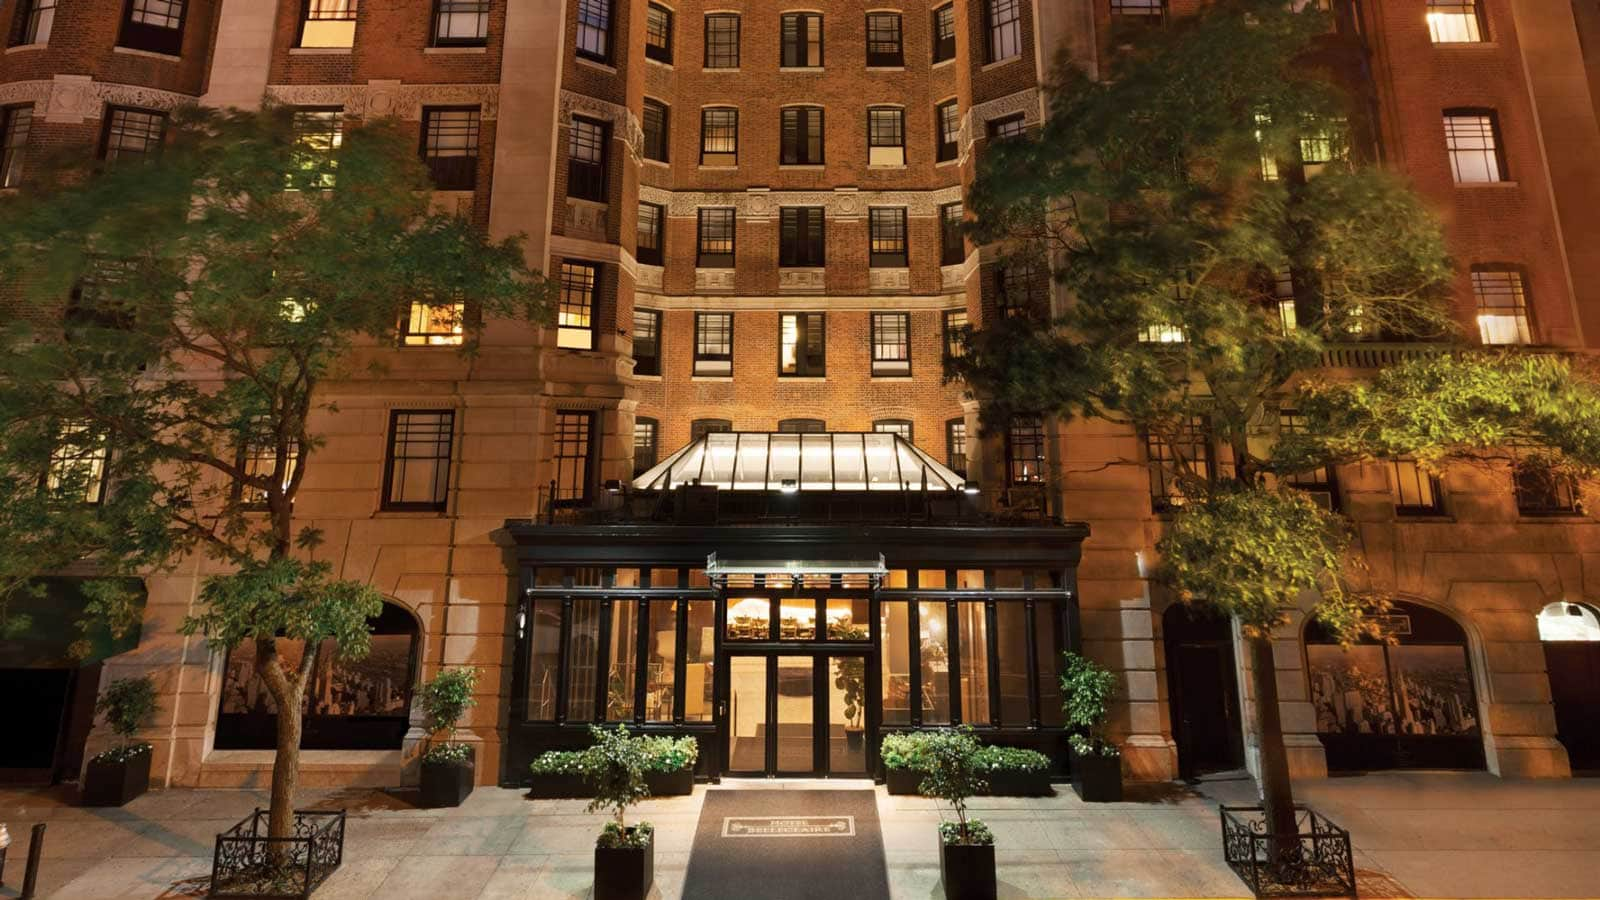 Stay at a hotel like this with your Booking.com coupon code